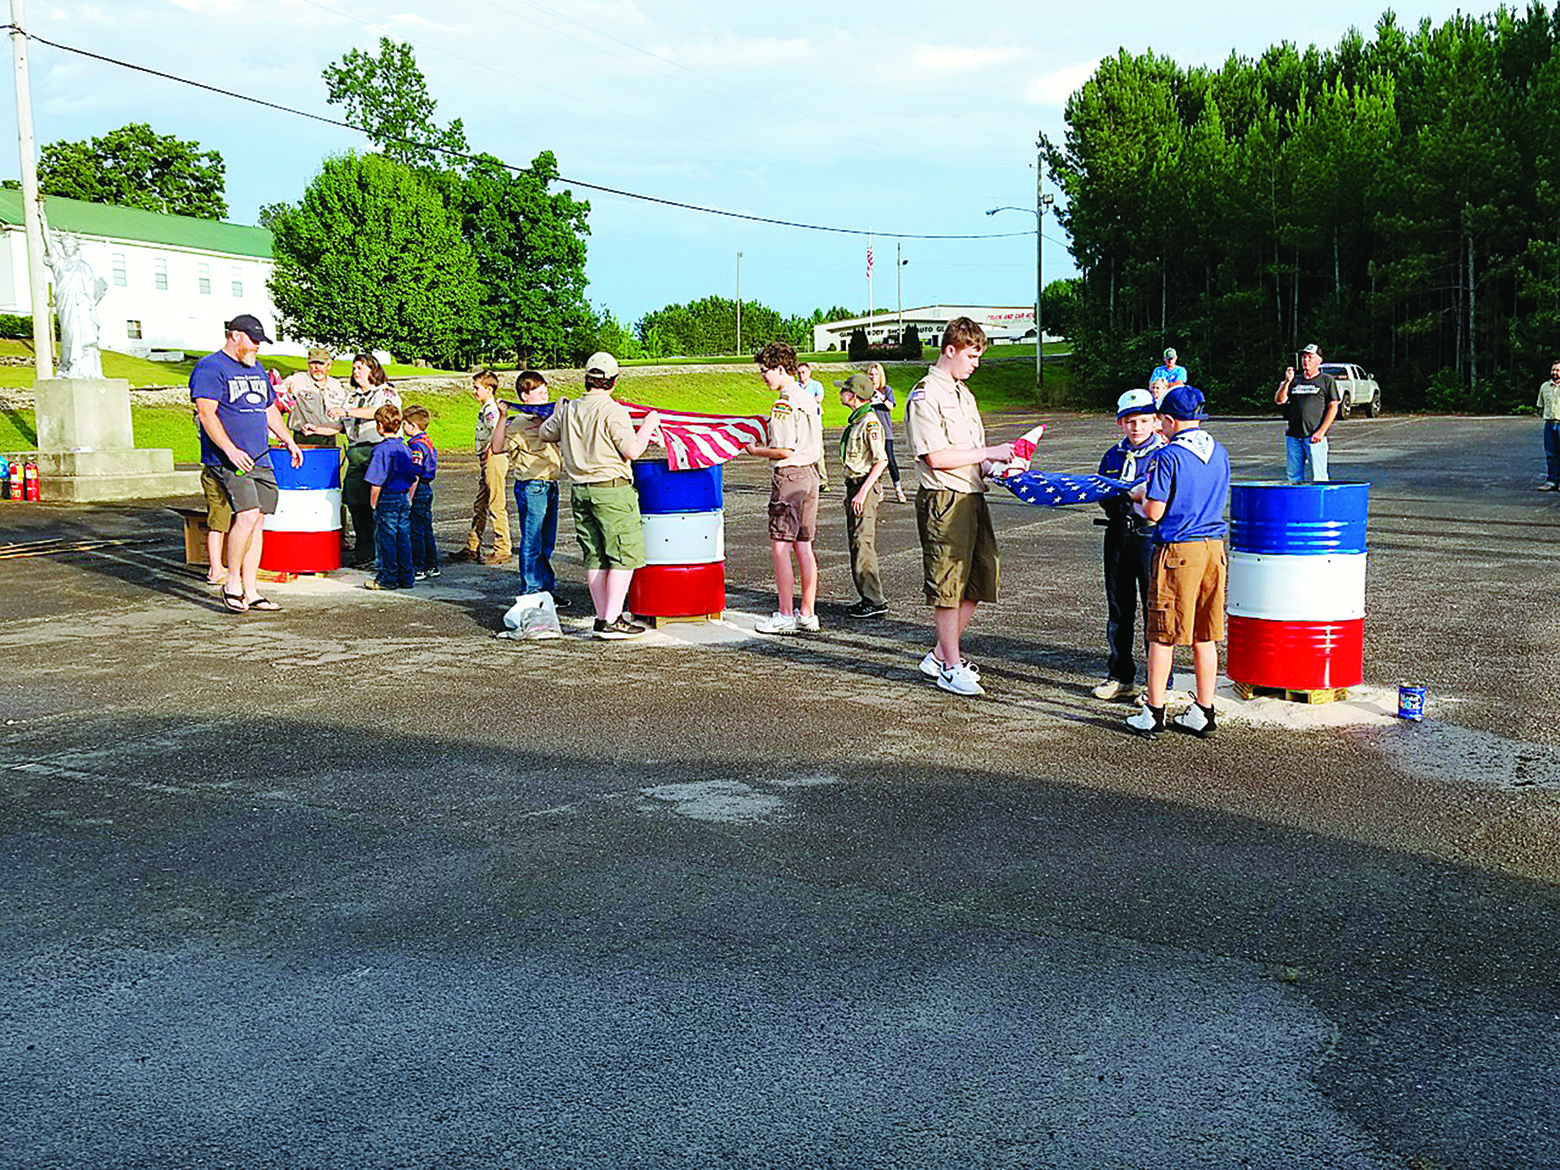 Scout Pack 126 in Jasper hosted a Flag Day flag retirement ceremony Tuesday at 6 p.m. in the VFW Post 4850 parking lot in Jasper.